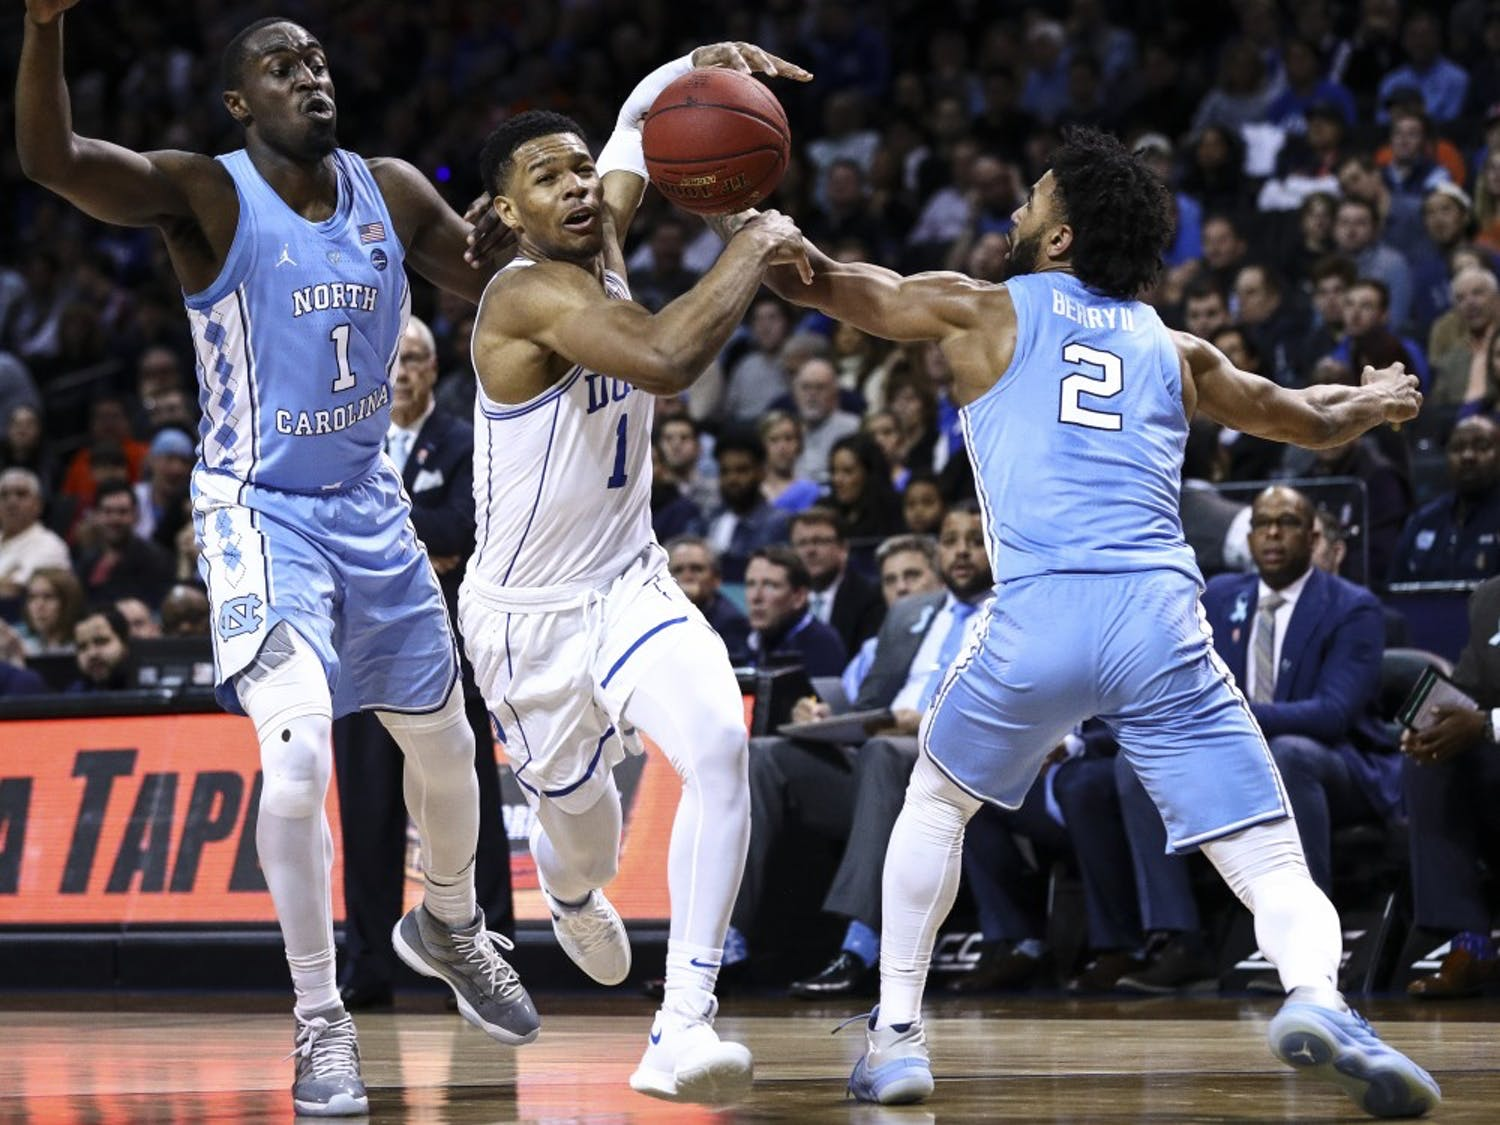 Theo Pinson (1) and Joel Berry II (2) strip the ball from Duke's Trevon Duval (1) during the ACC semifinals on March 9 in Brooklyn. Photo courtesy of David Welker, theACC.com.